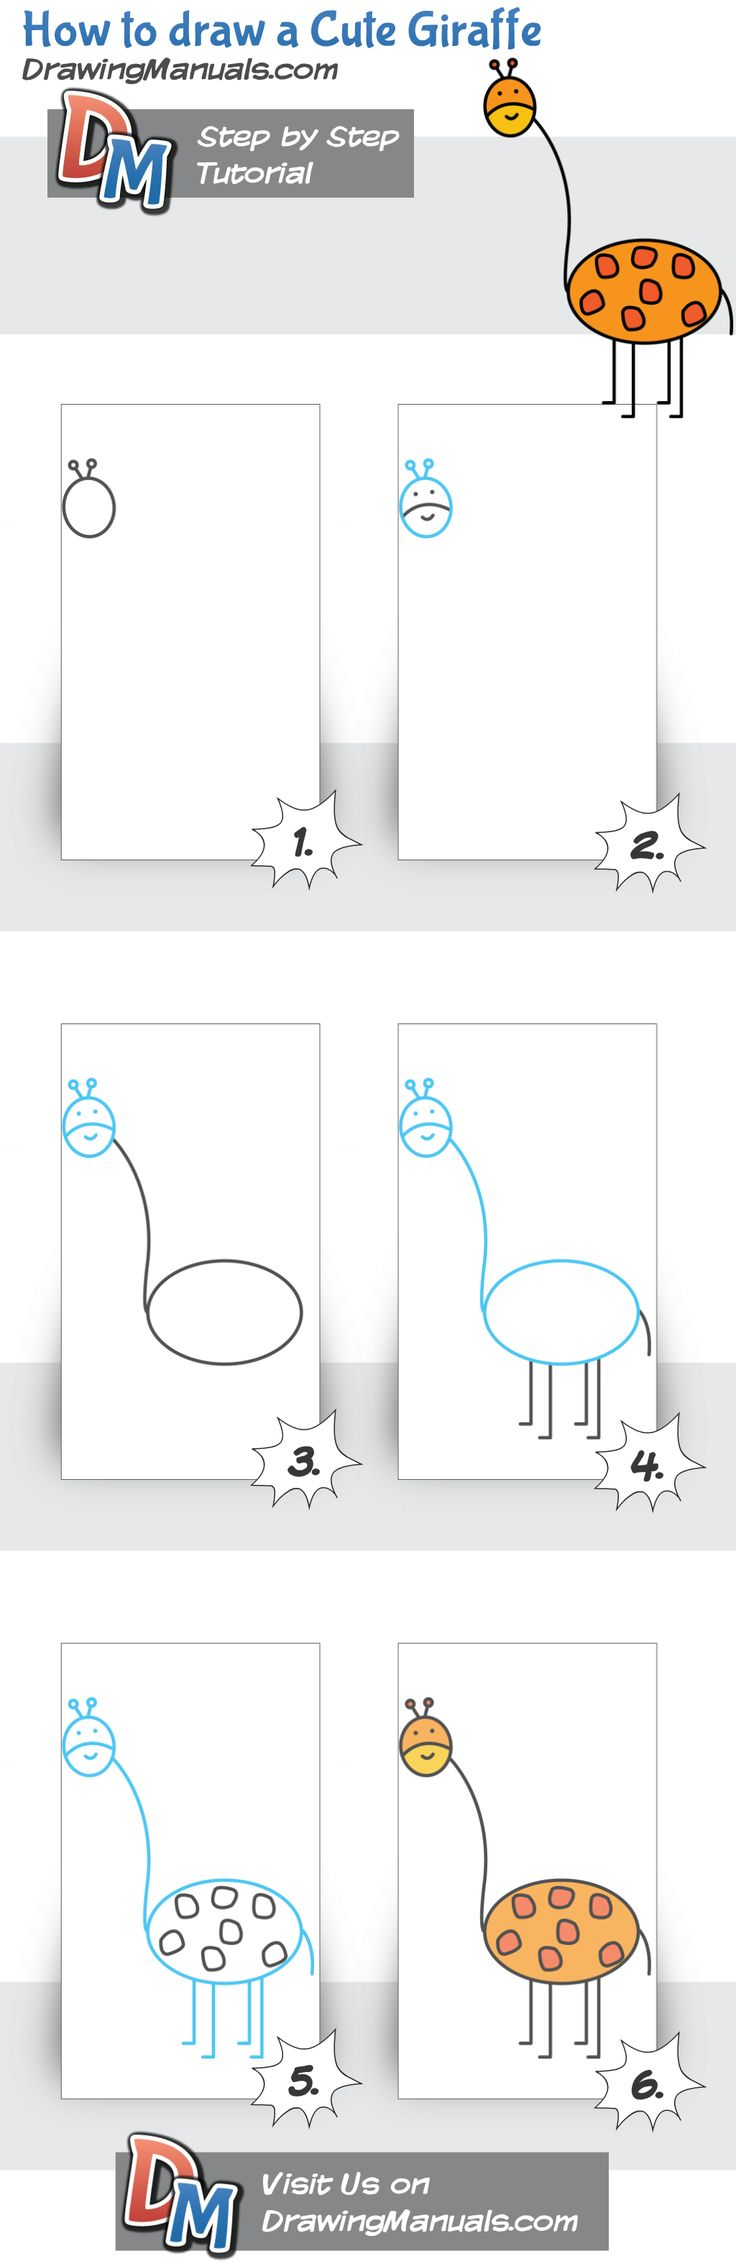 How To Draw A Cute Giraffe For Kids Only On Drawingmanuals